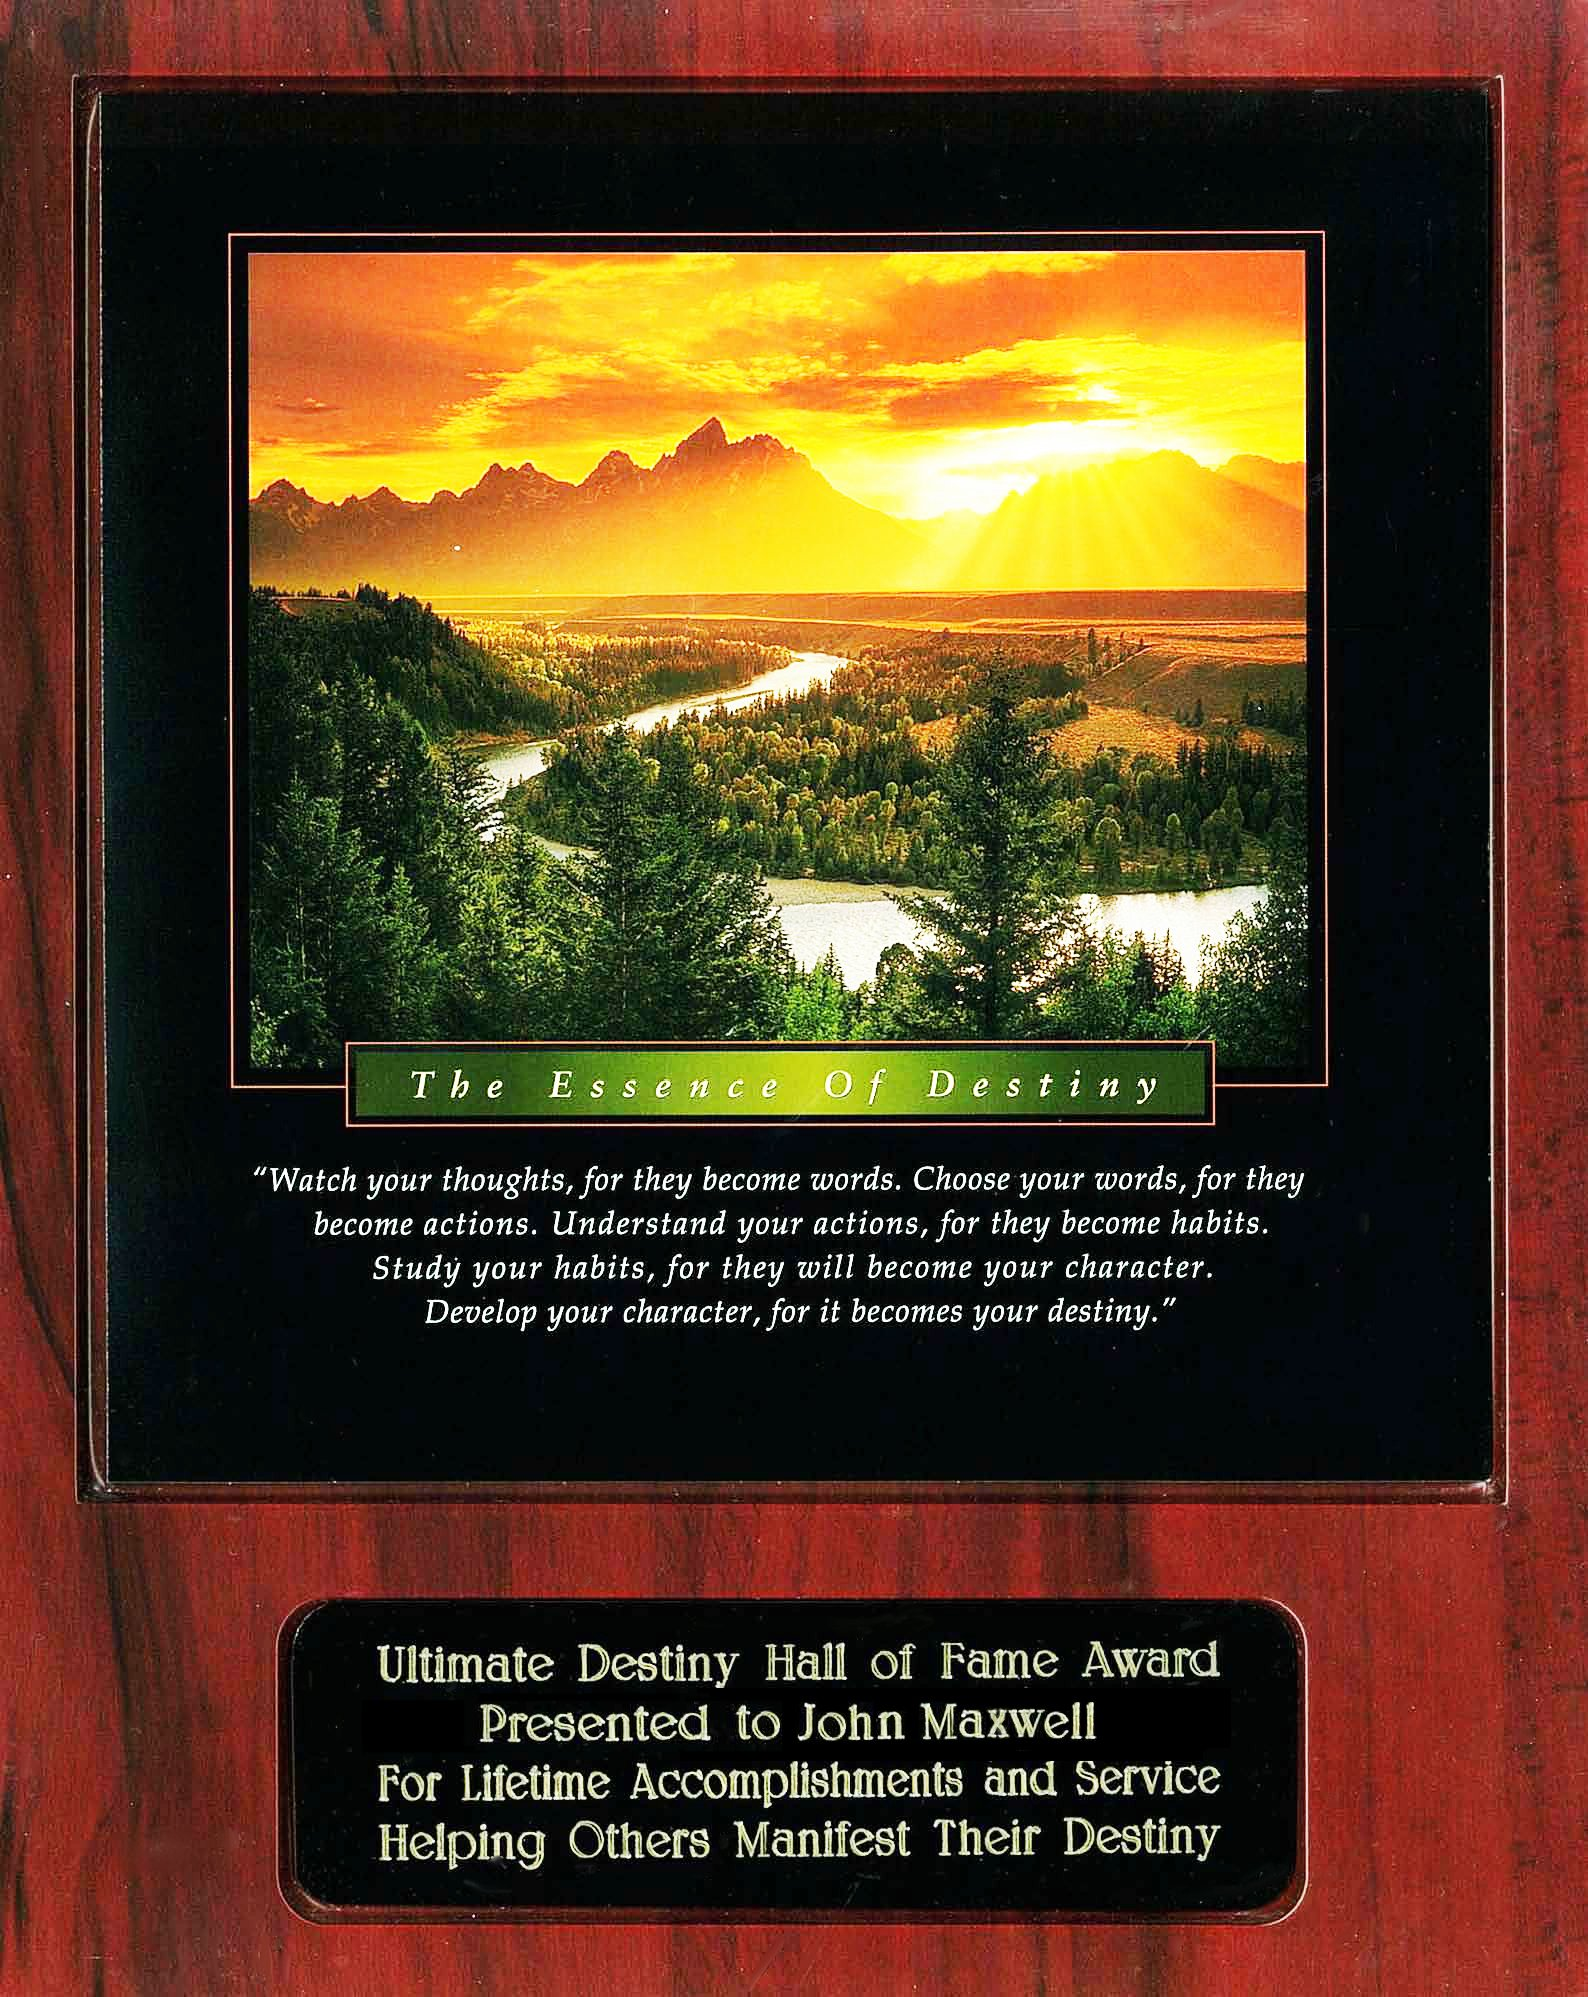 John C Maxwell Ultimate Destiny Hall of Fame Award Recipient Plaque